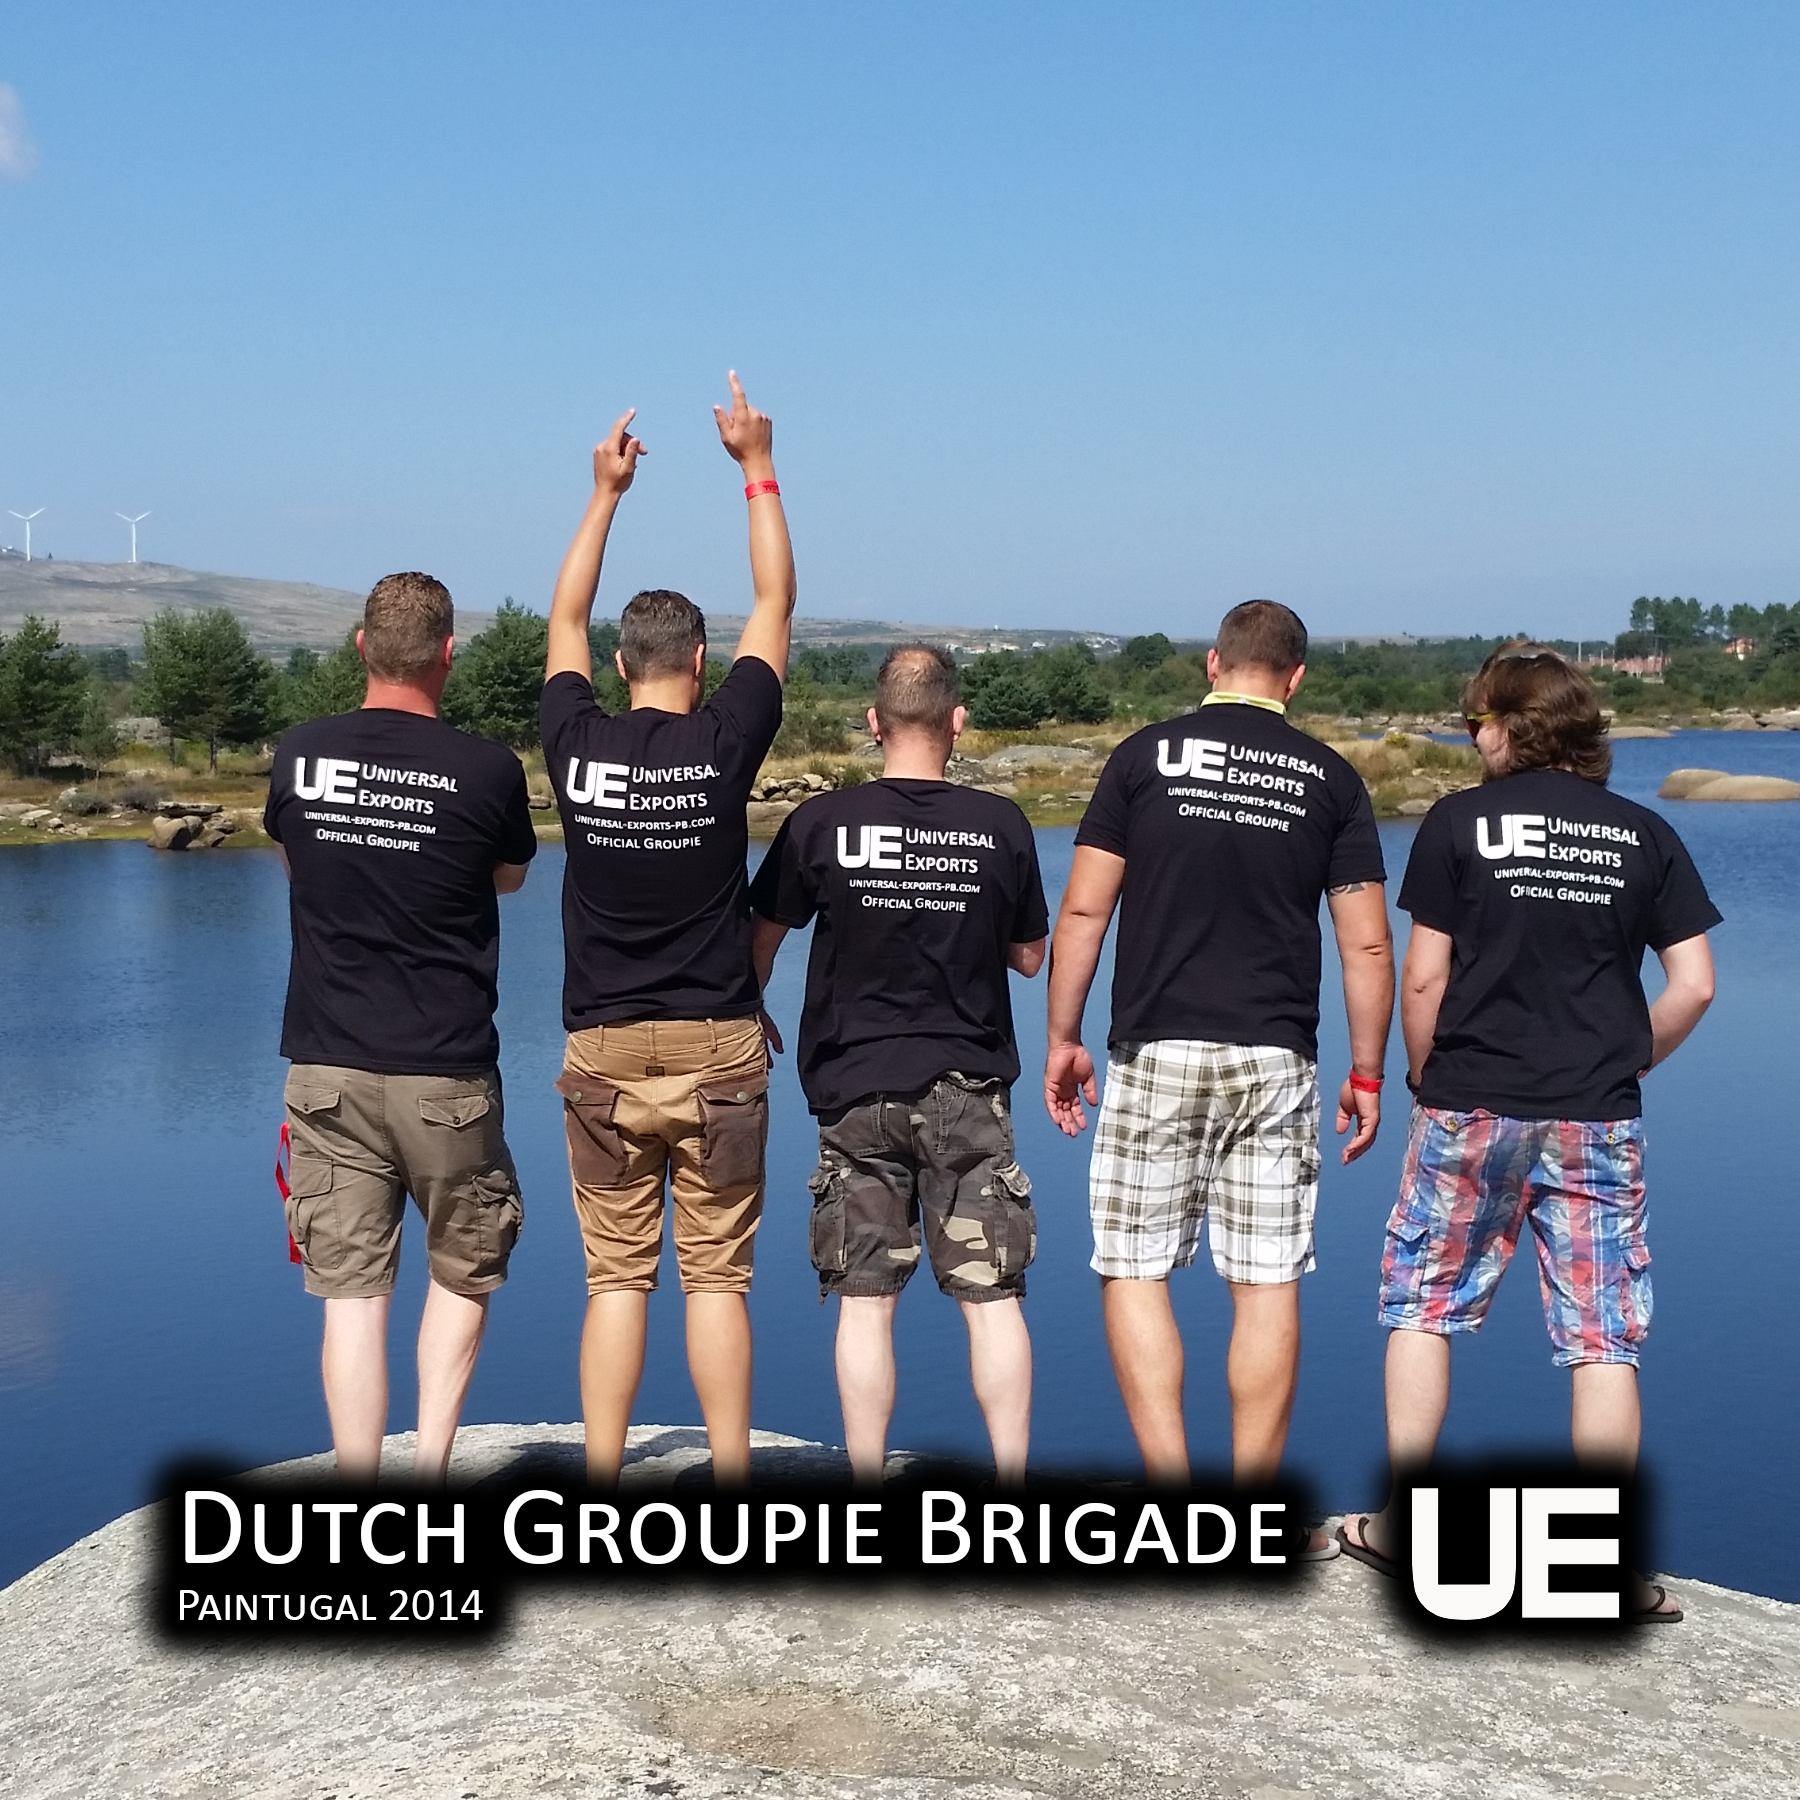 Dutch Groupie Brigade - Paintugal 2014